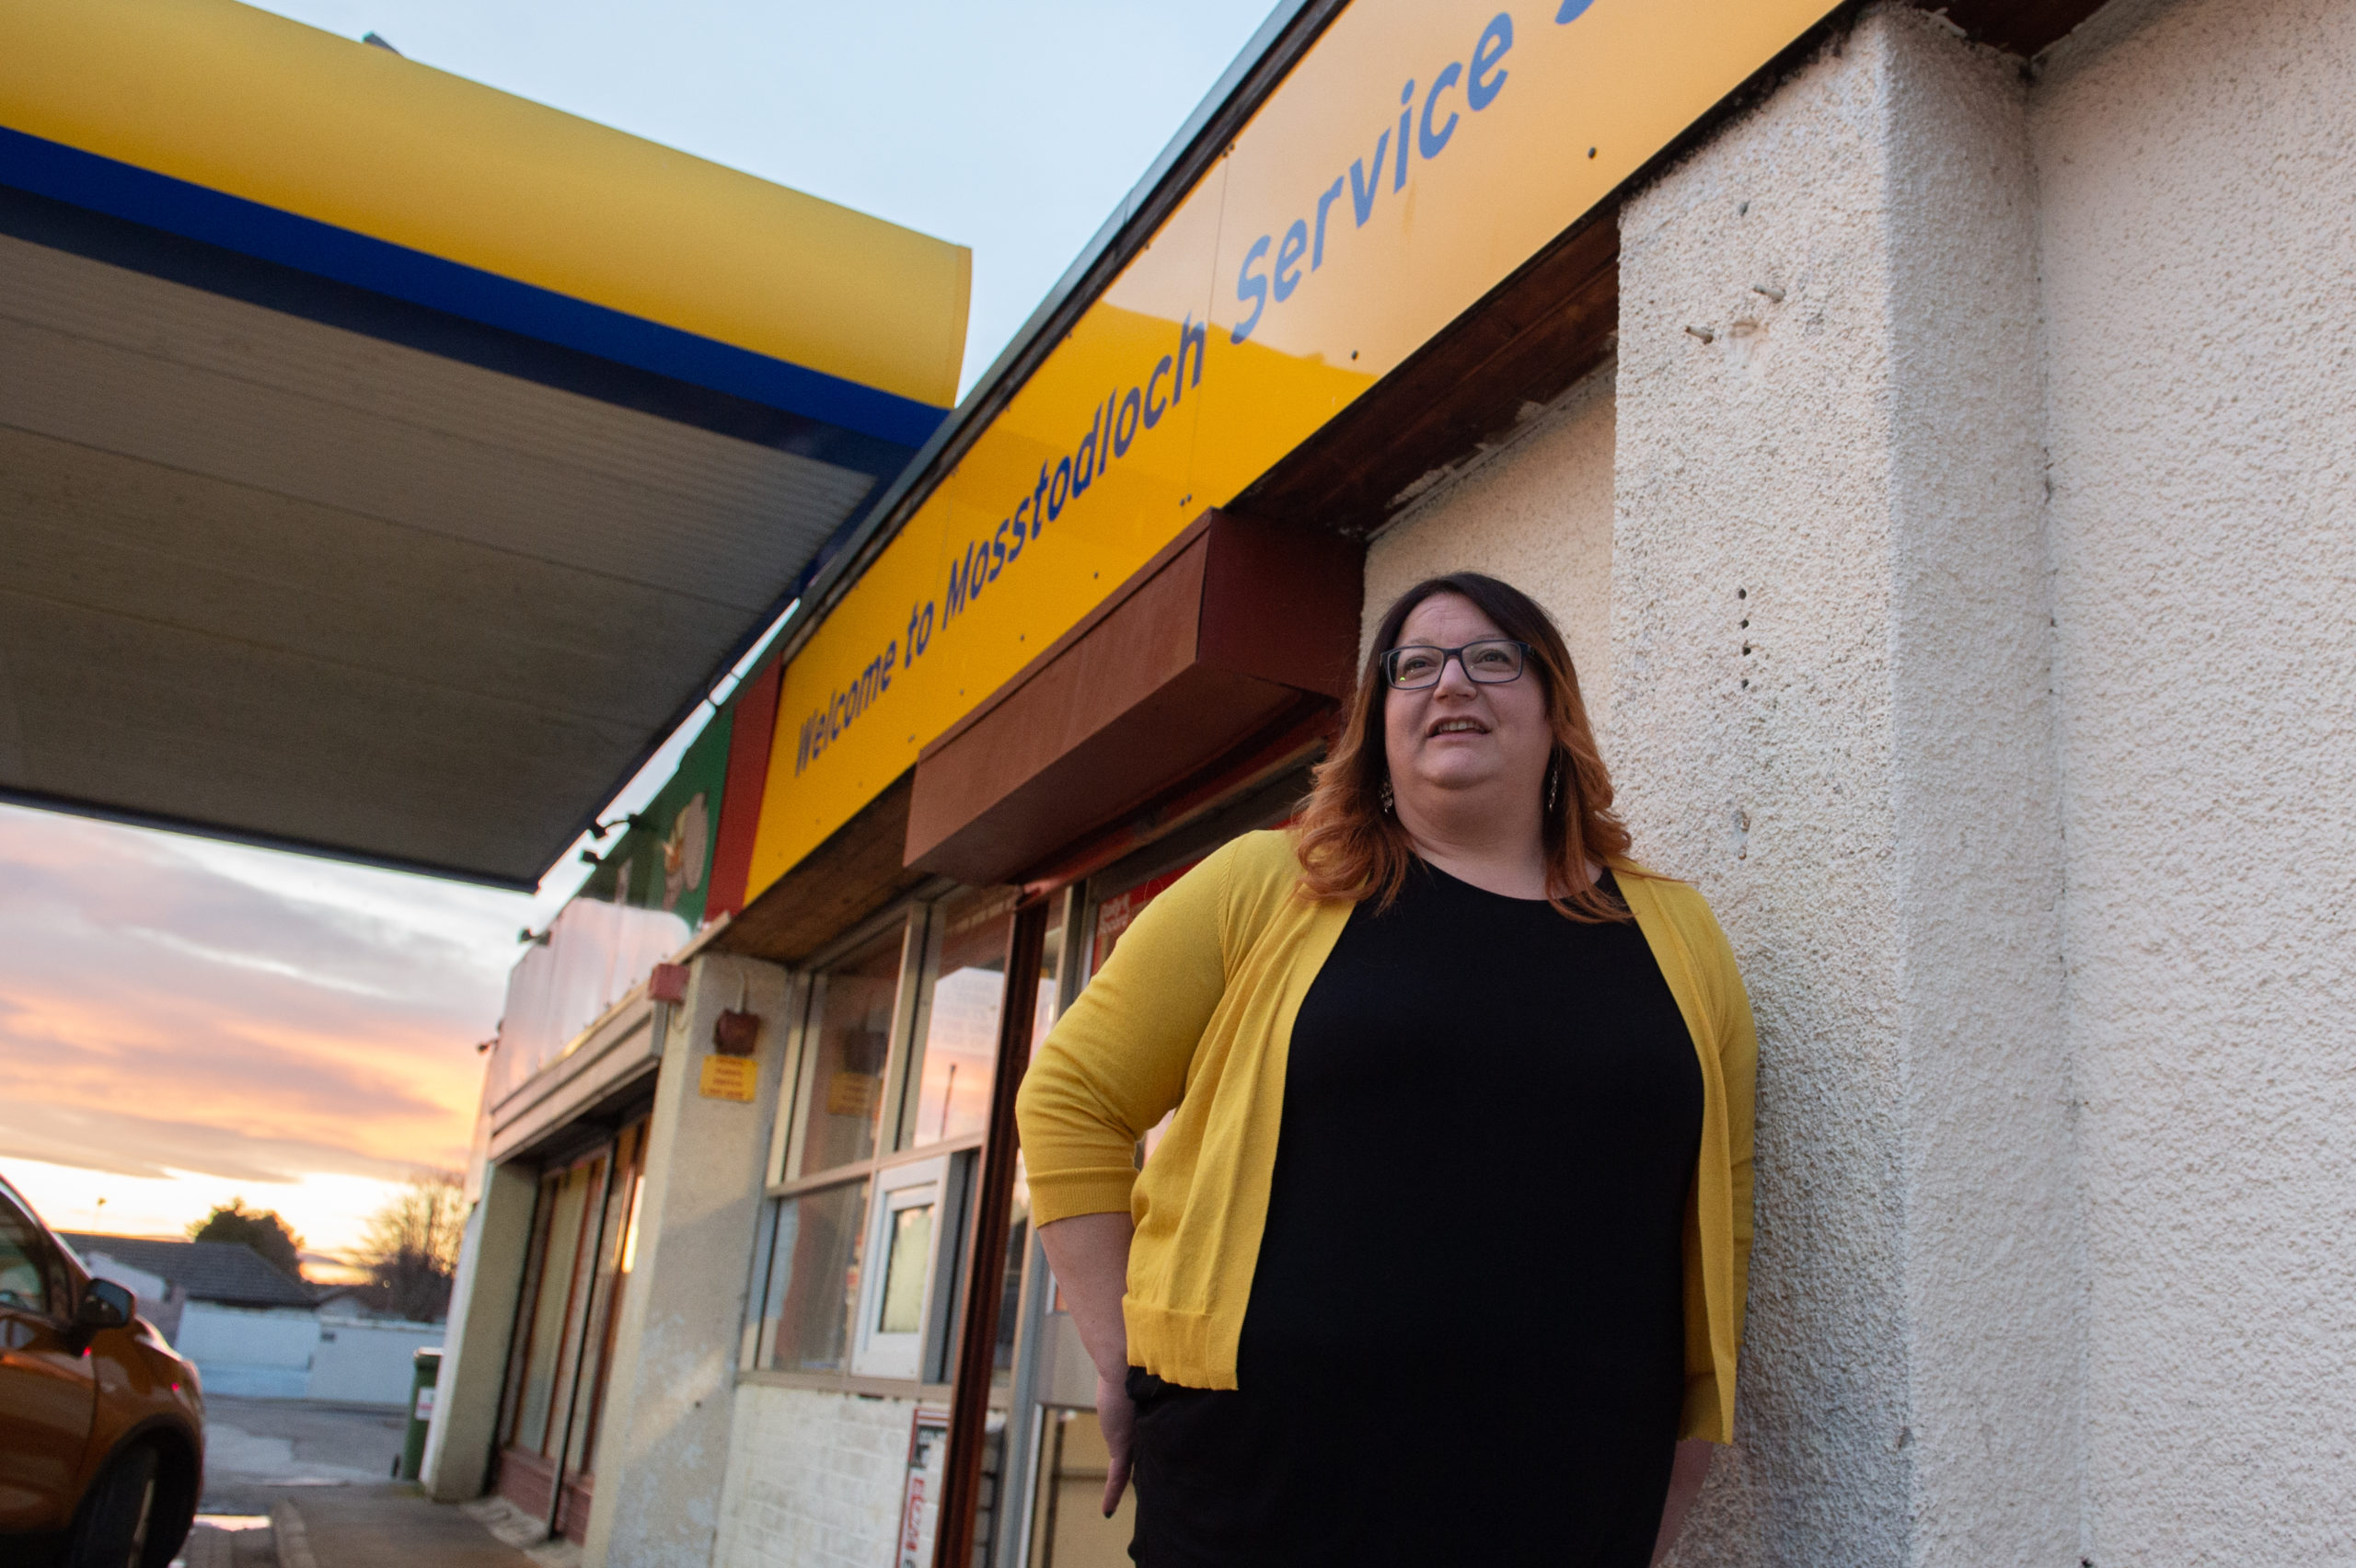 Council Convener Shona Morrison is pictured at Mosstodloch garage in Moray where a new post office has opened. Pictures by Jason Hedges.